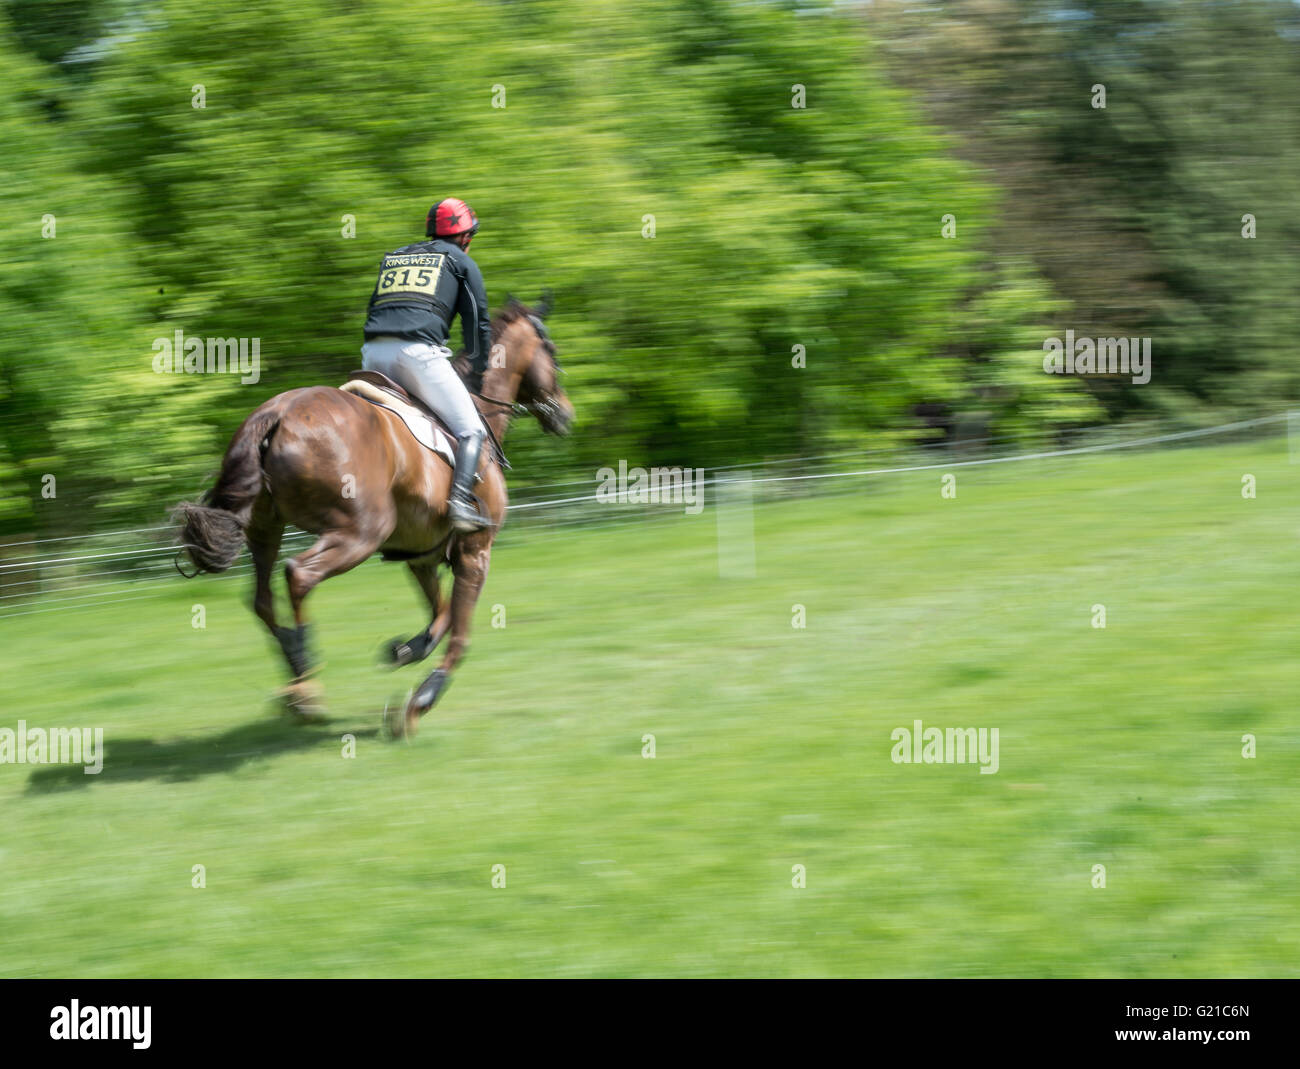 Rockingham, Corby, UK. 22nd May, 2016. (owned by ) races along an obstacle free part of the course during the cross - Stock Image